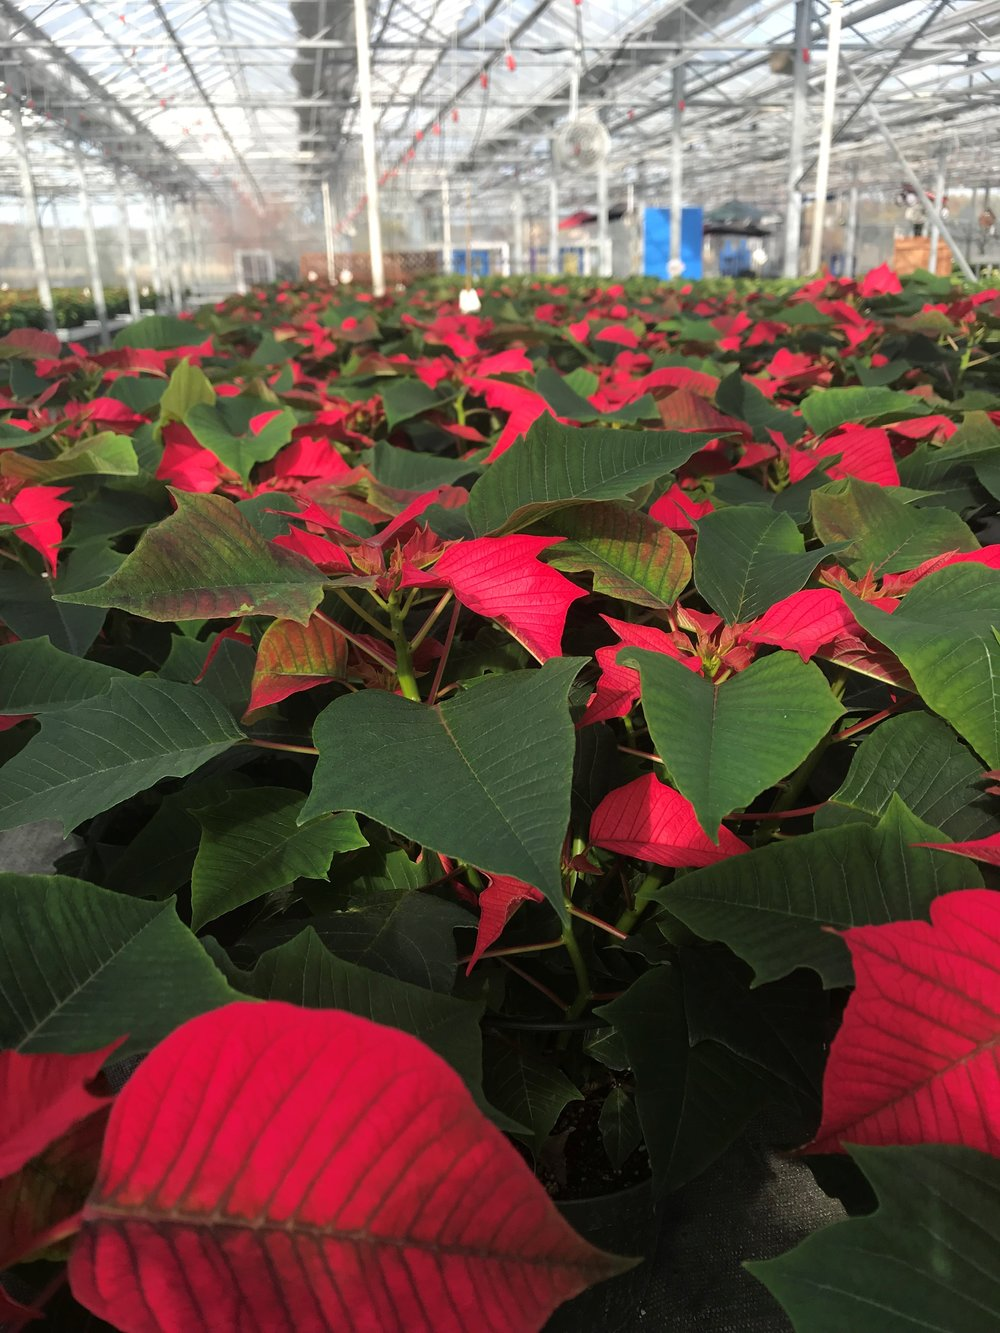 The greenhouses are packed with poinsettas